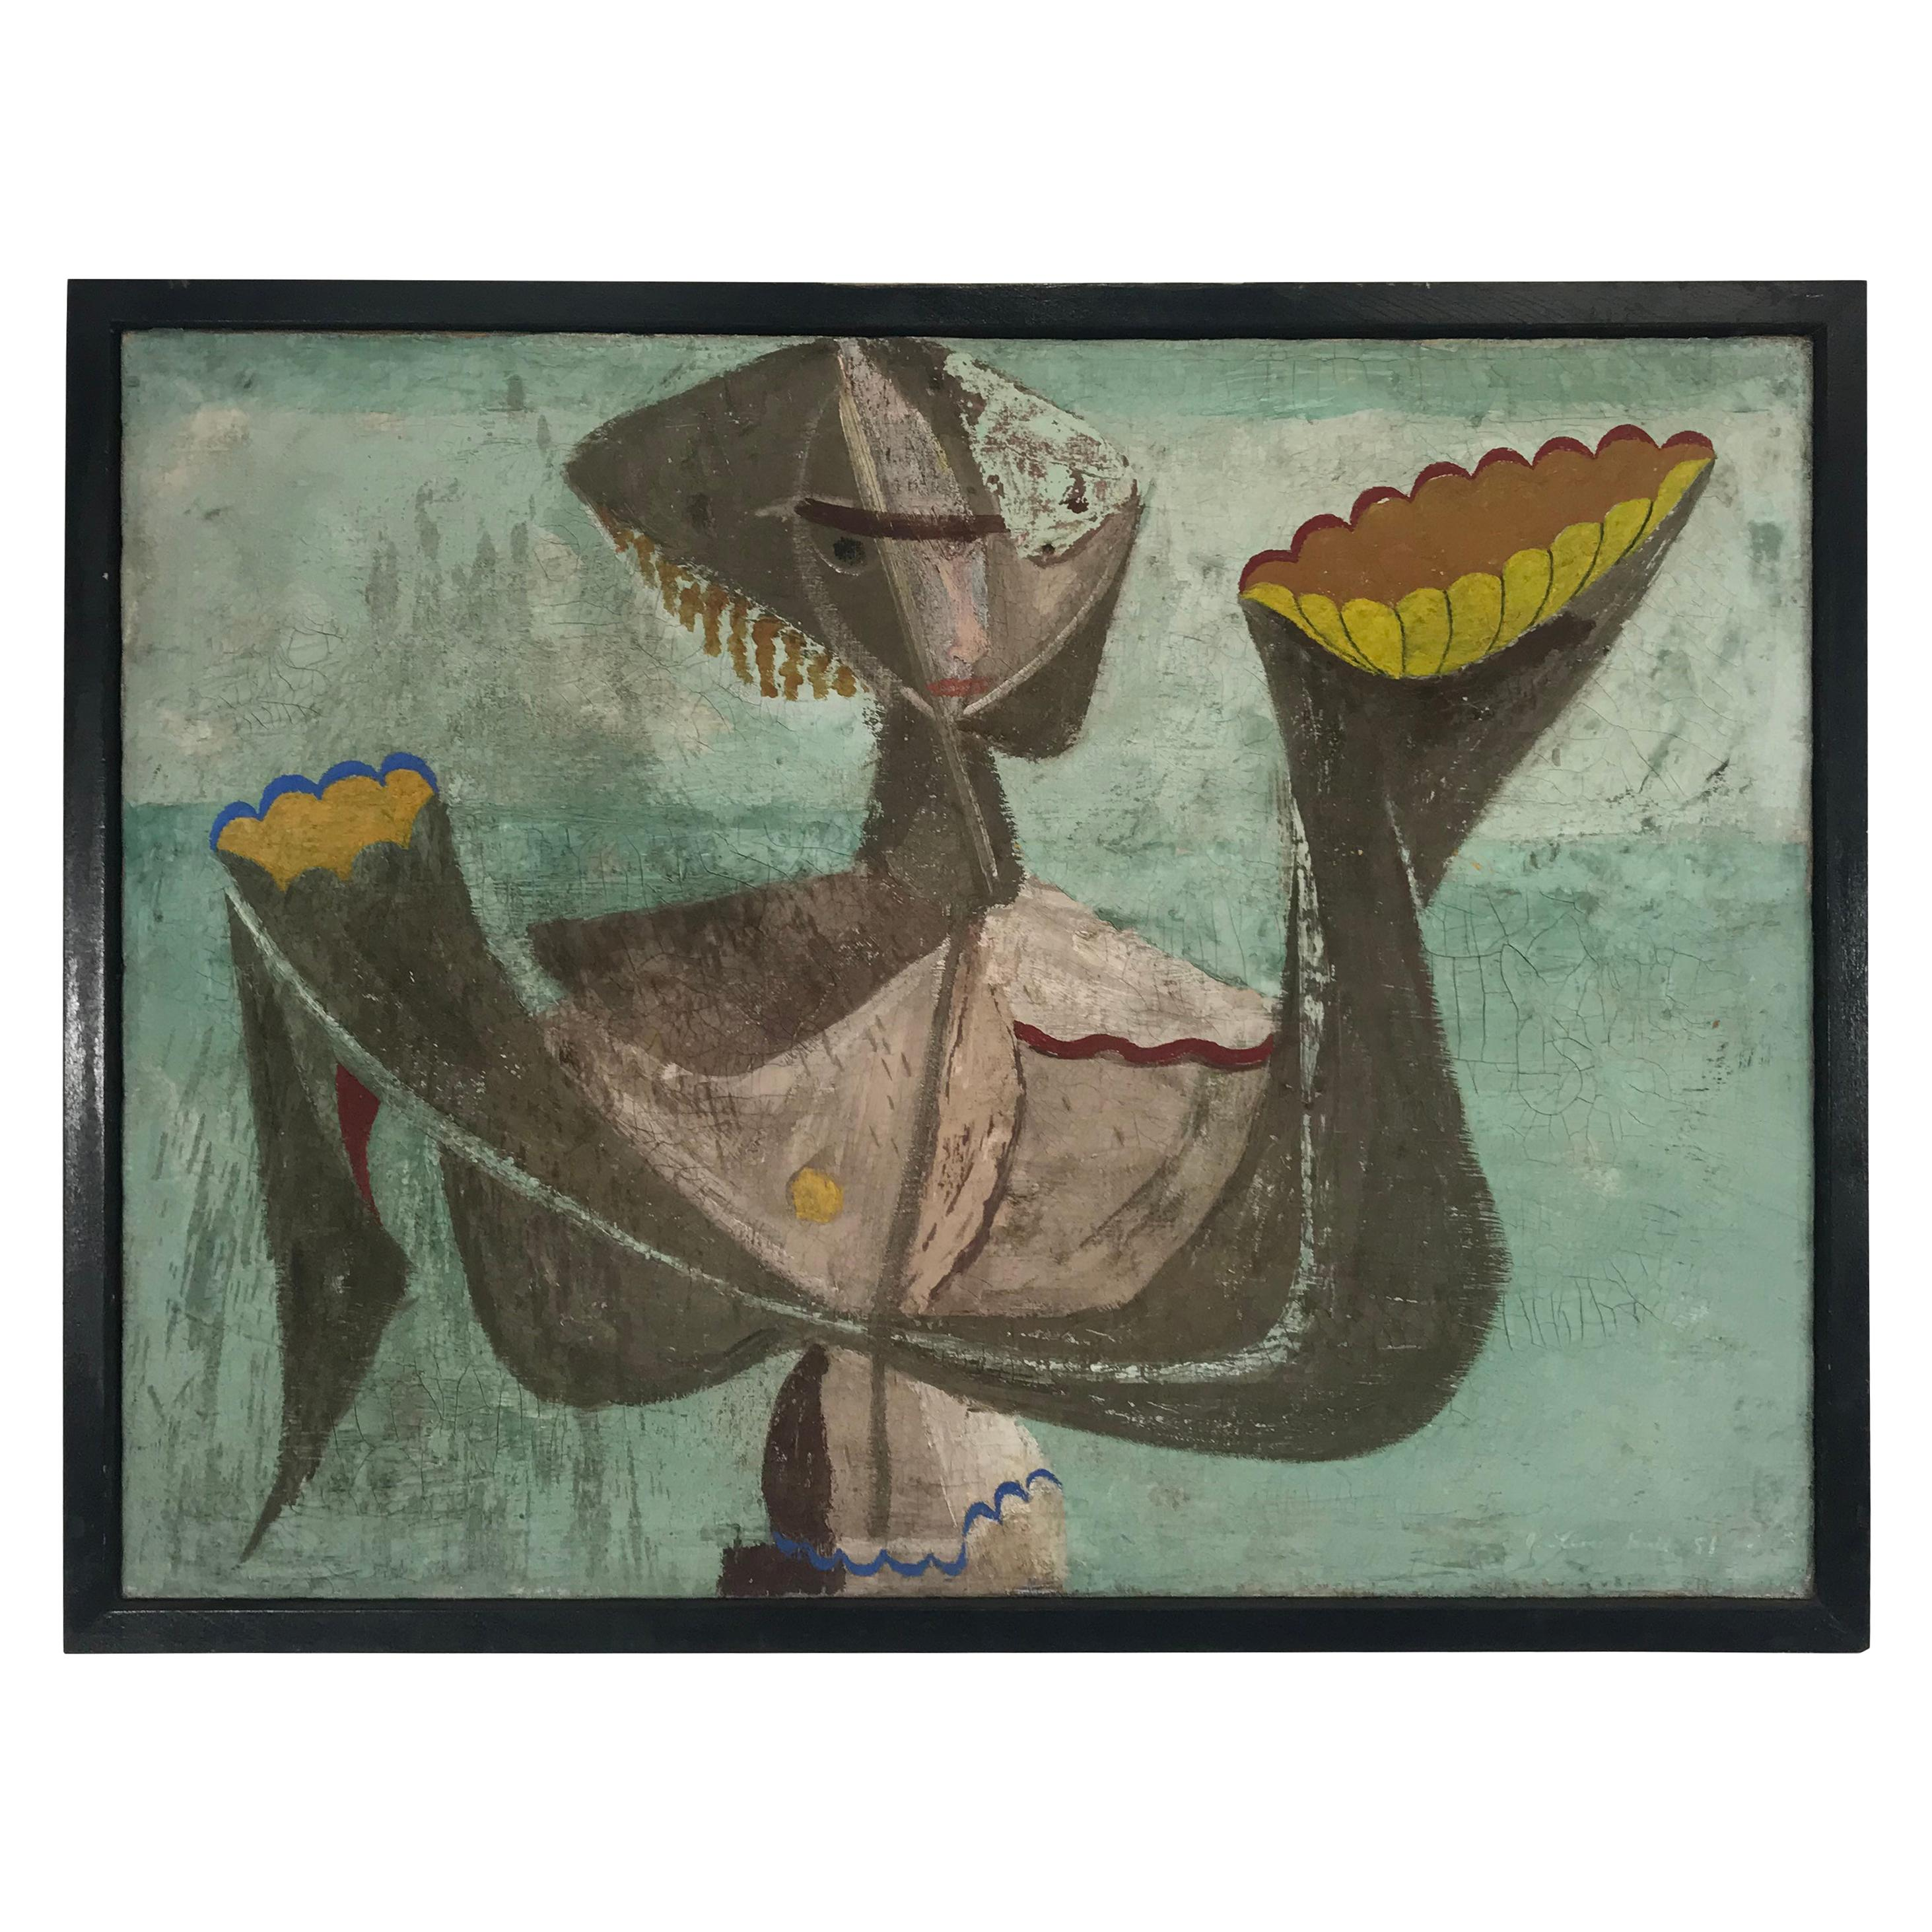 Unusual Modernist Oil on Canvas Surrealist, Signed Oliver Smith, circa 1951